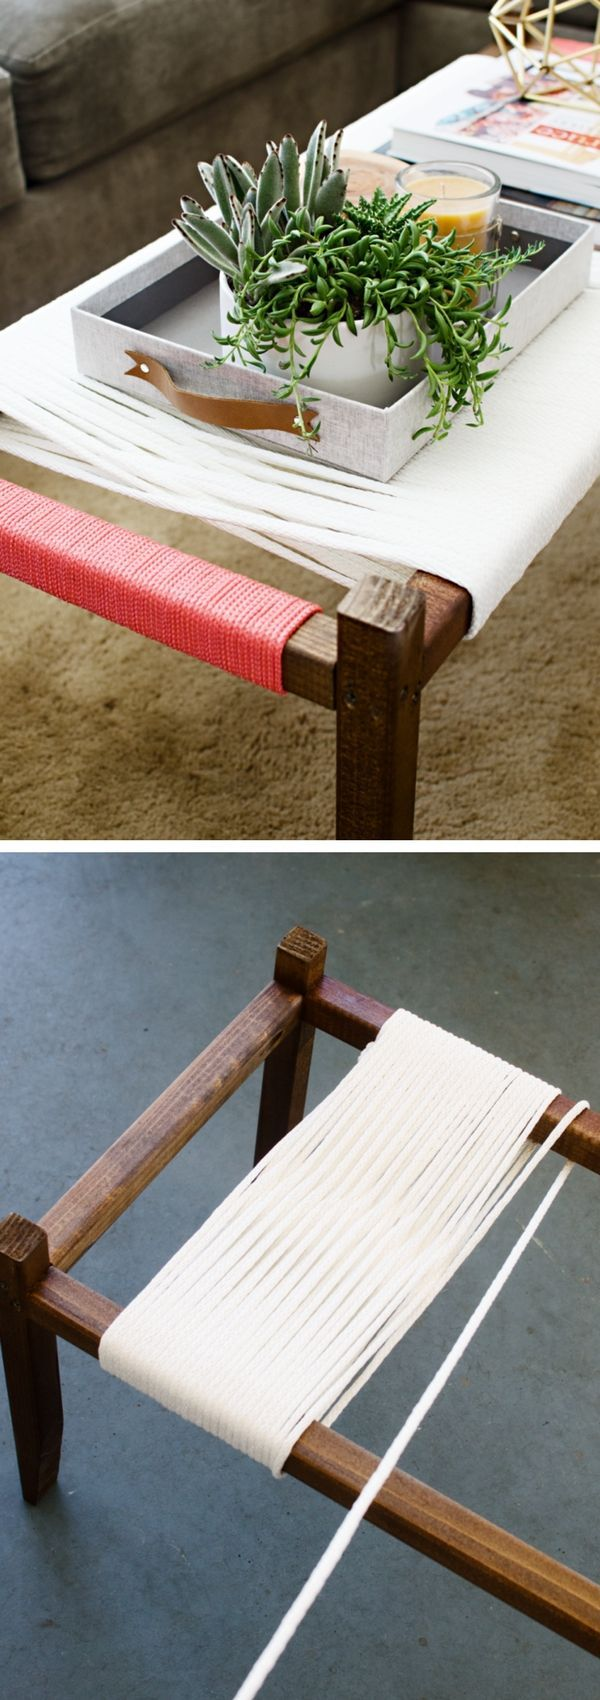 Check out the tutorial on how to make a DIY woven bench @istandarddesign